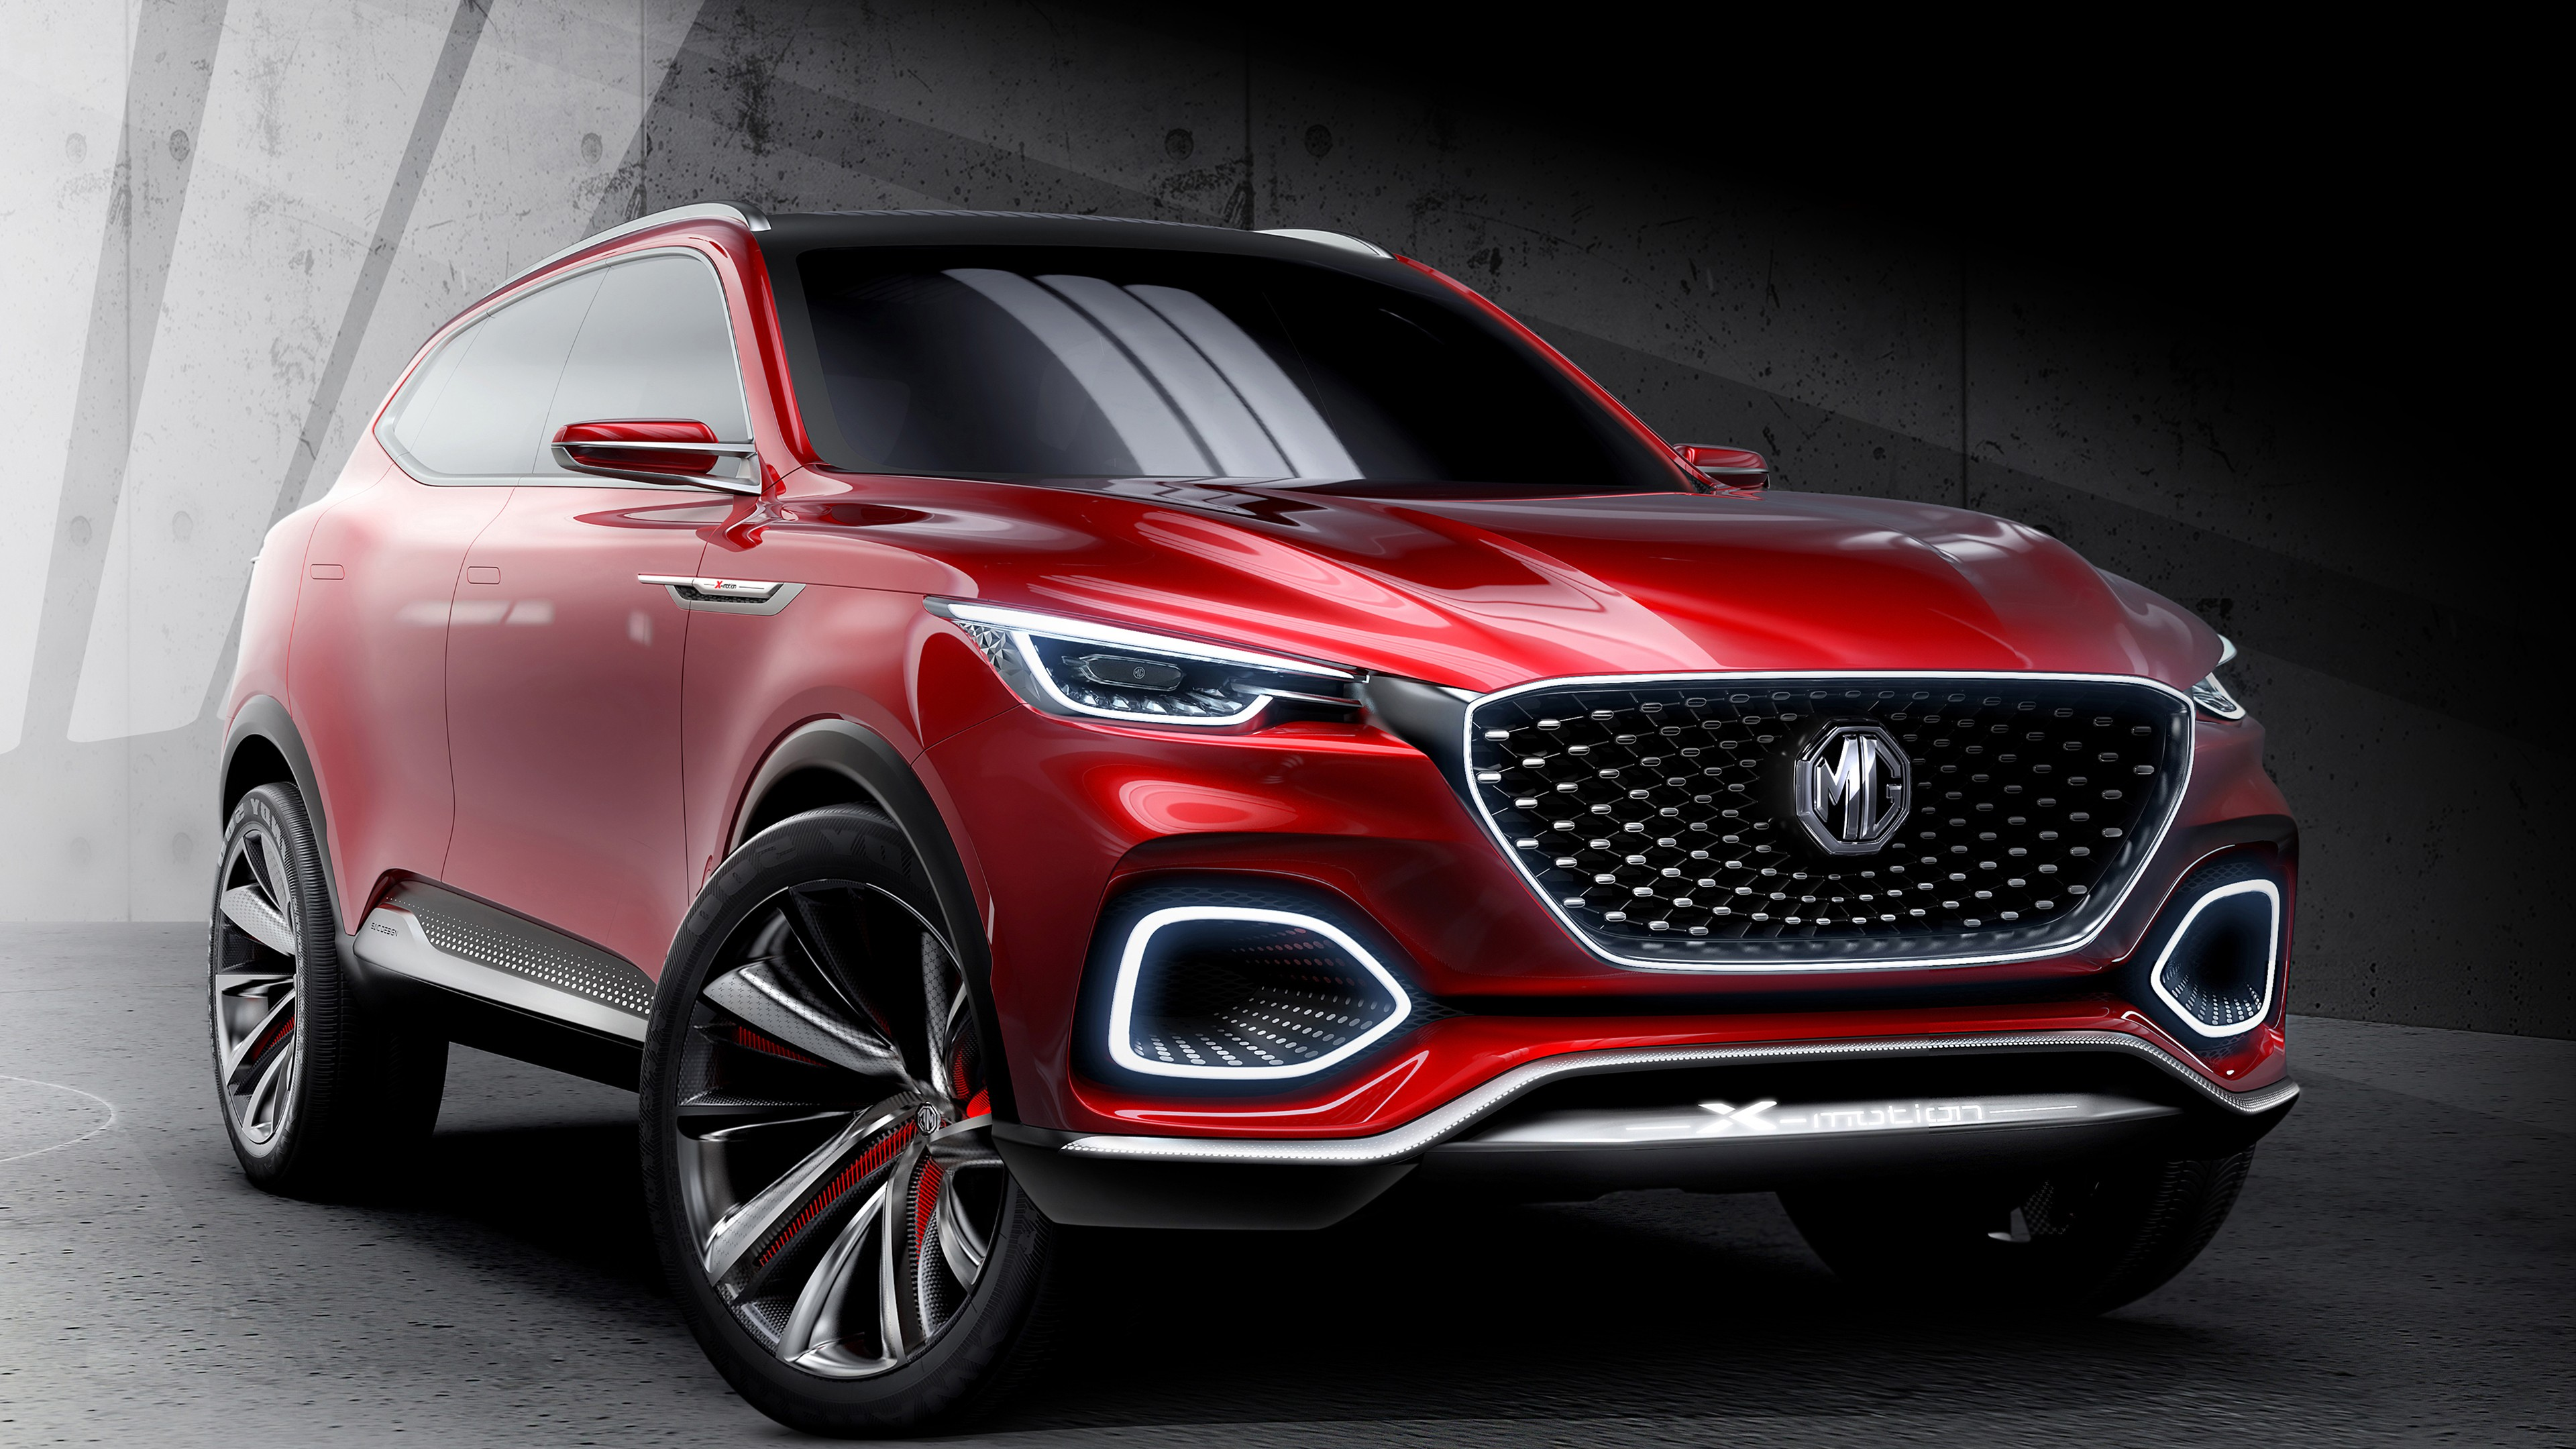 Concept Car MG X Motion SUV Photo 4K Desktop Wallpaper